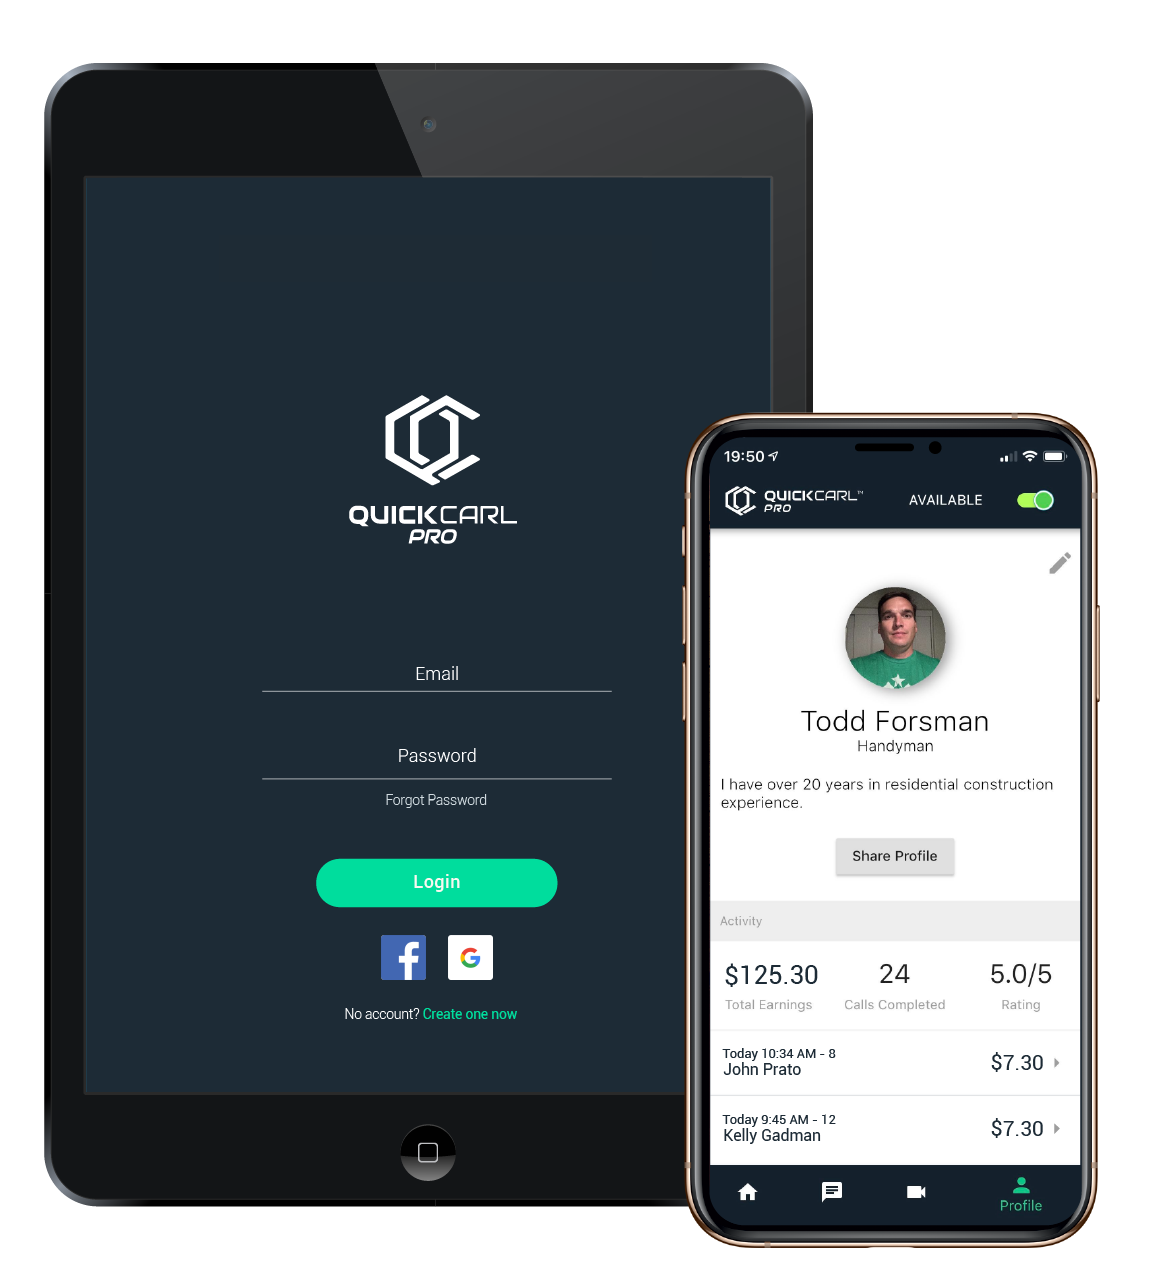 QuickCarl Pro - Start Earning Today with On-Demand Virtual Service Calls